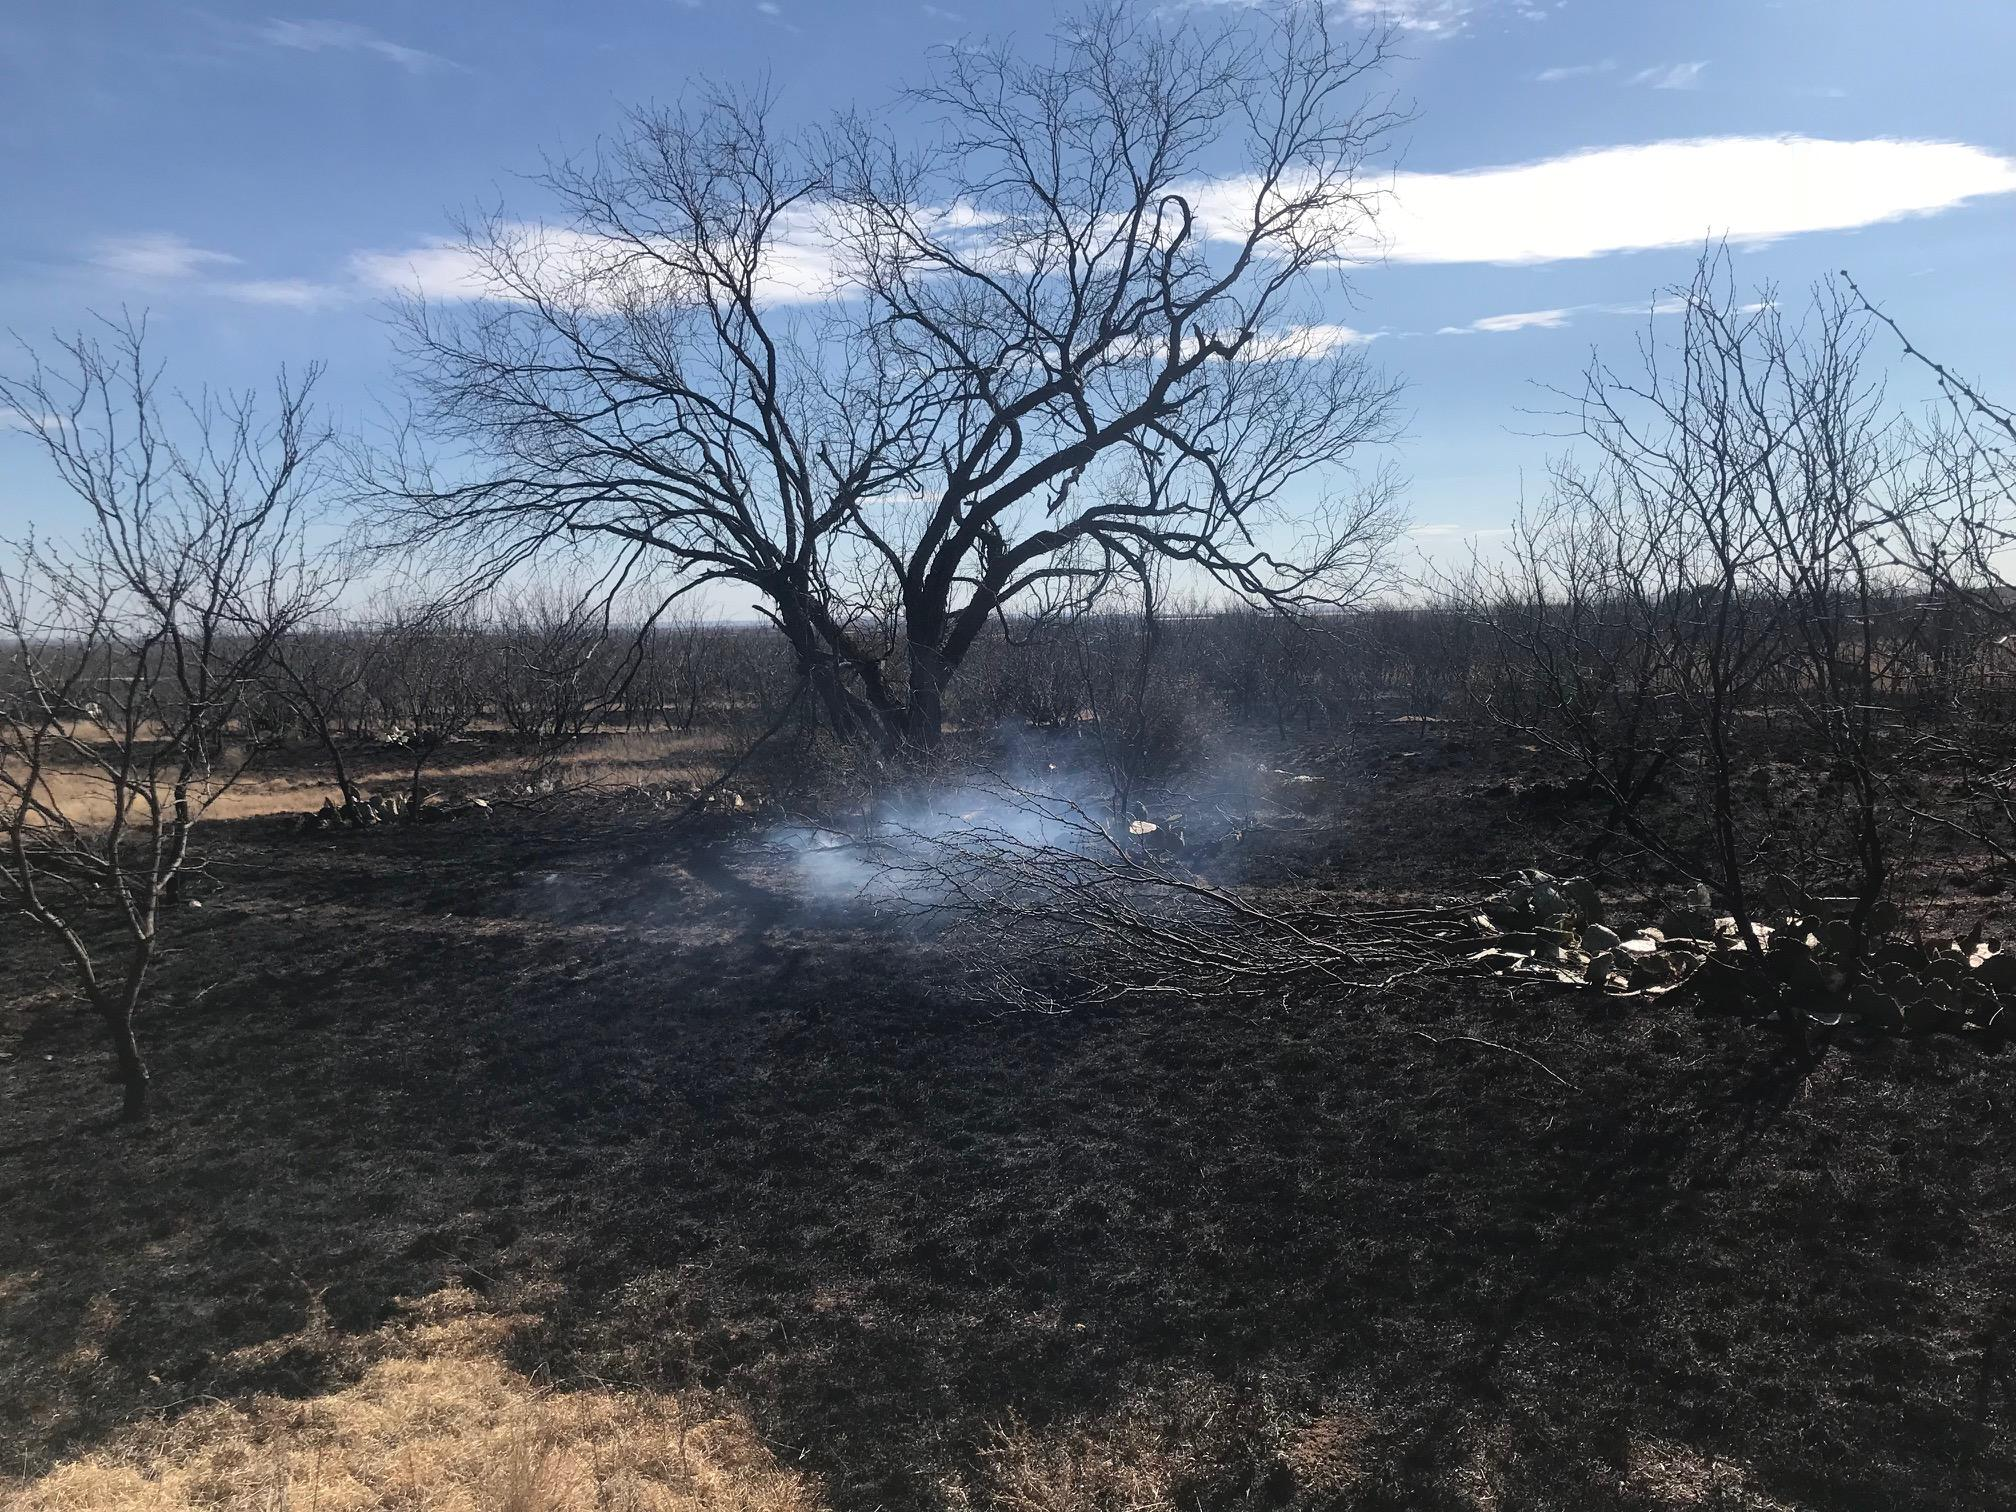 Multiple agencies responded to a two- to three-acre wildfire in Jones County -- just east of the Abilene landfill. The fire burned numerous old vehicles on Private Road 343 and threatened dozens of homes. Photos by Nick Bradshaw/KTXS News